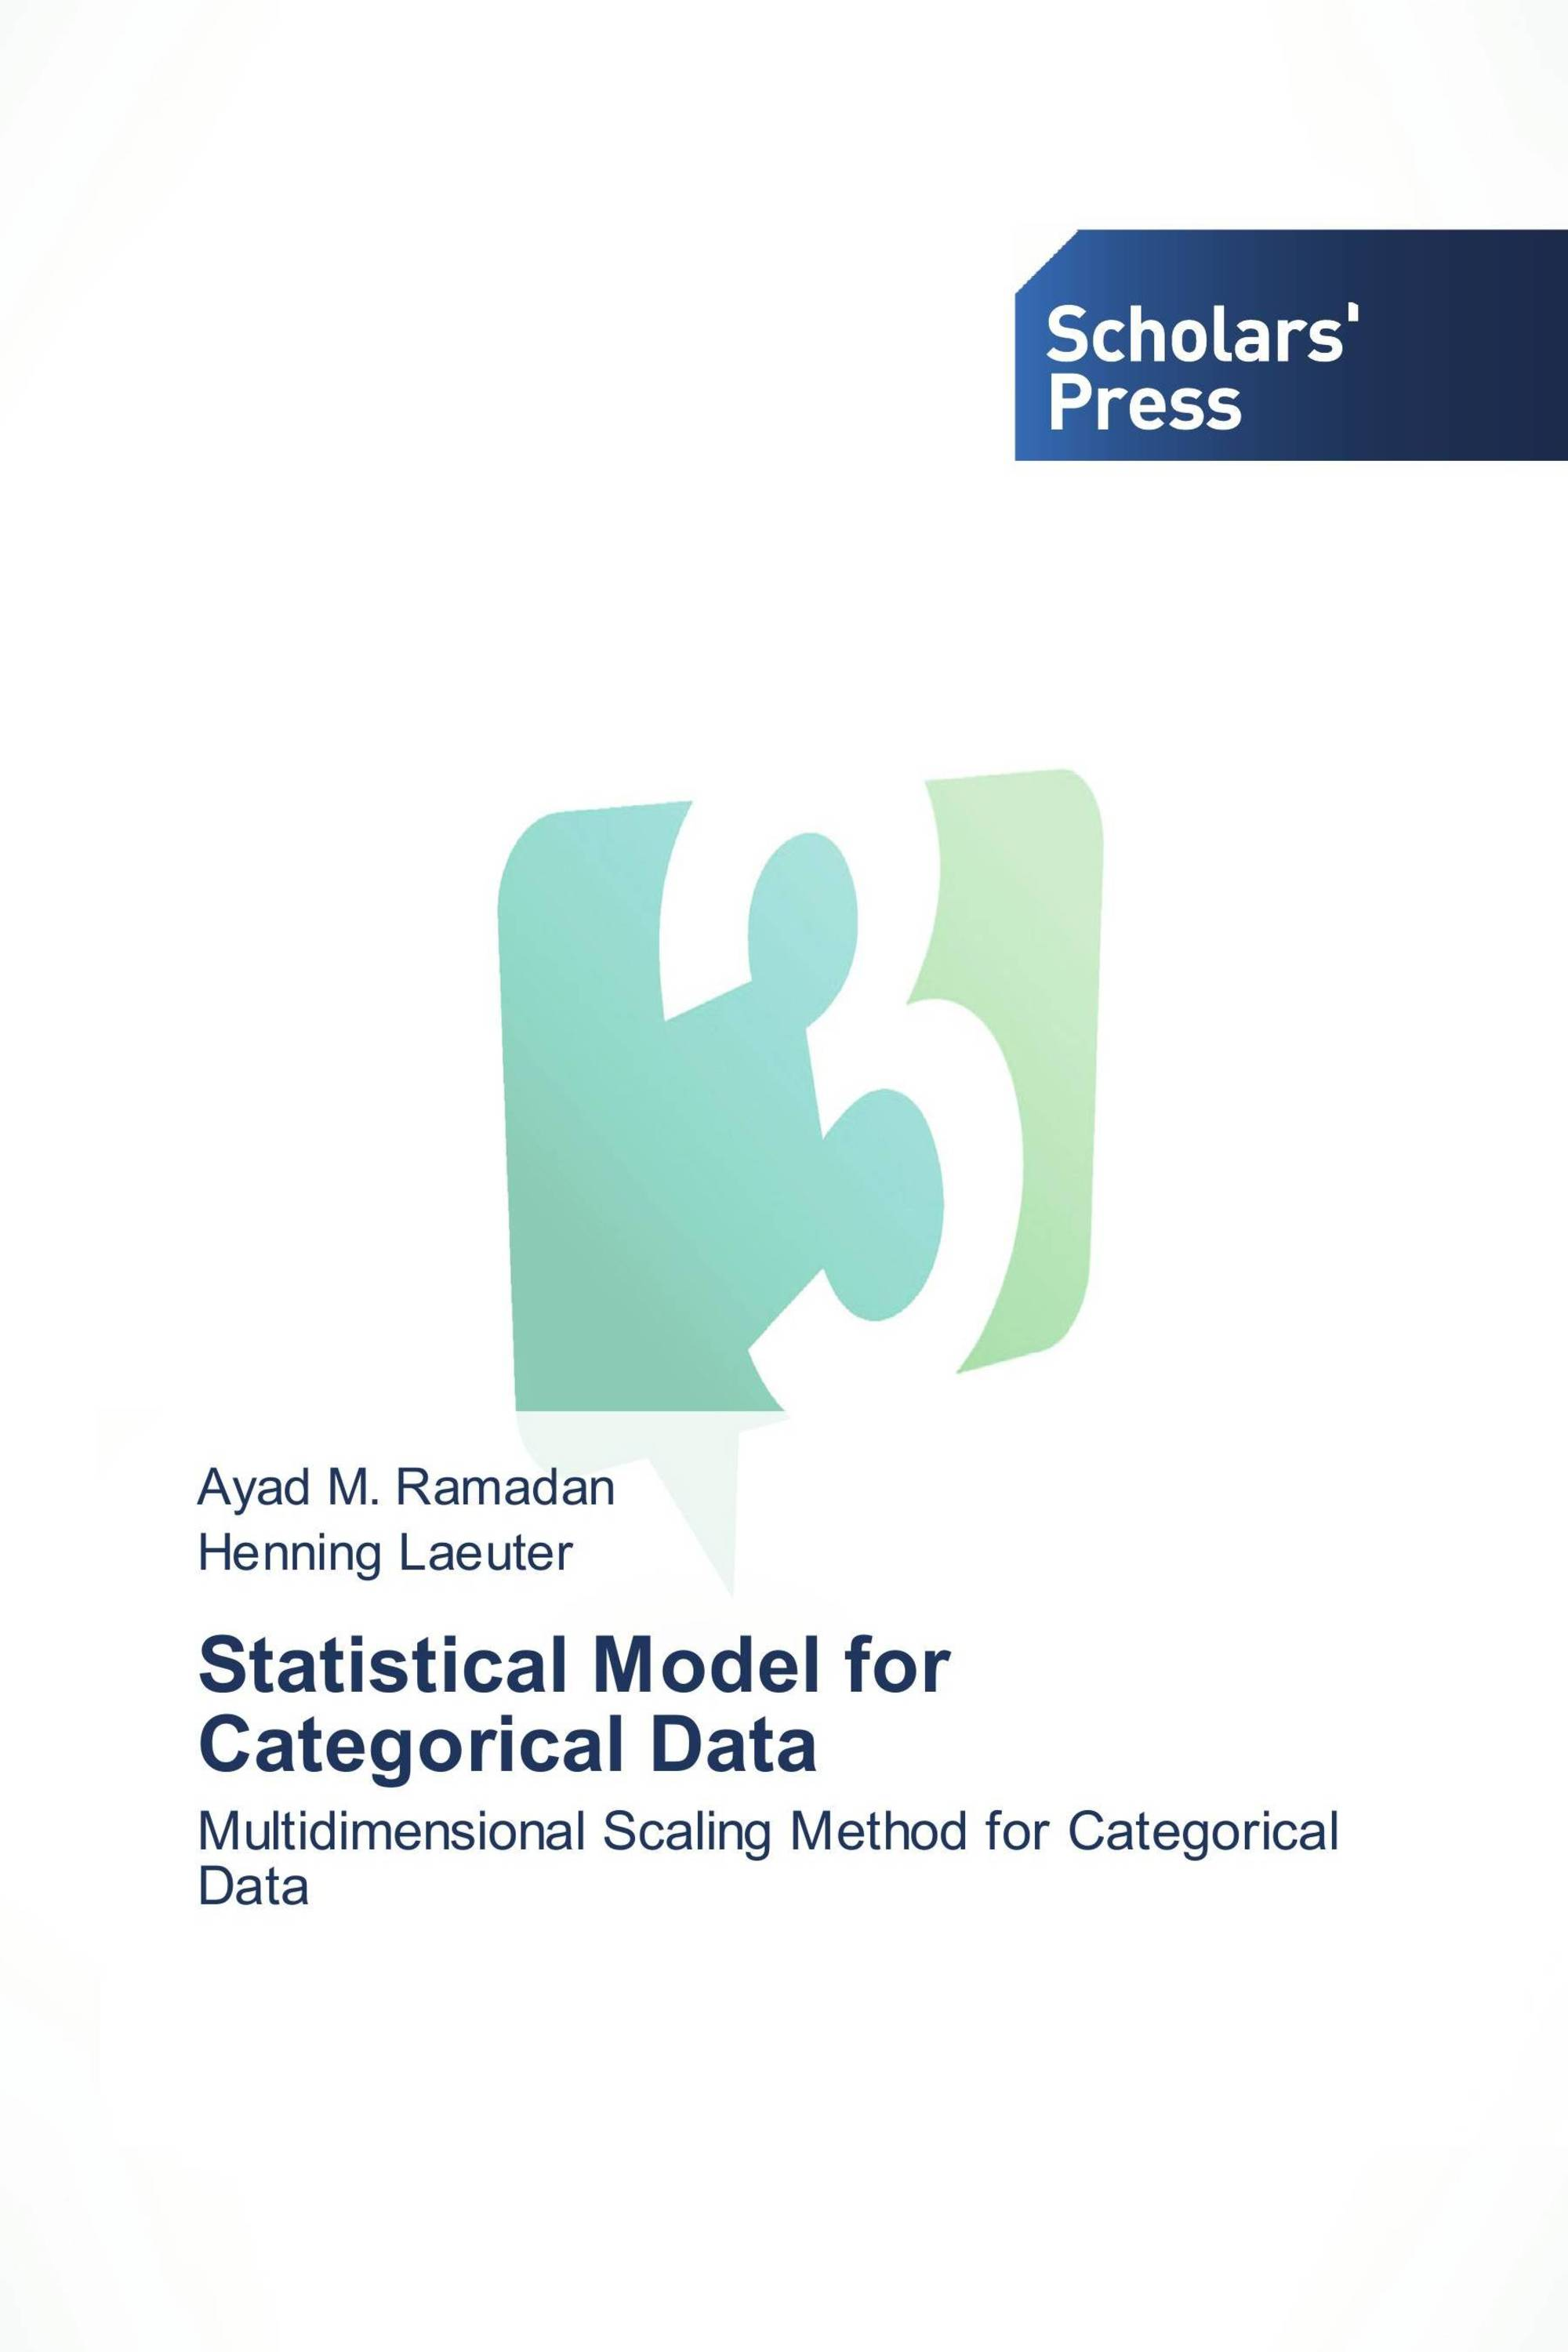 Statistical Model for Categorical Data / 978-3-639-71232-2